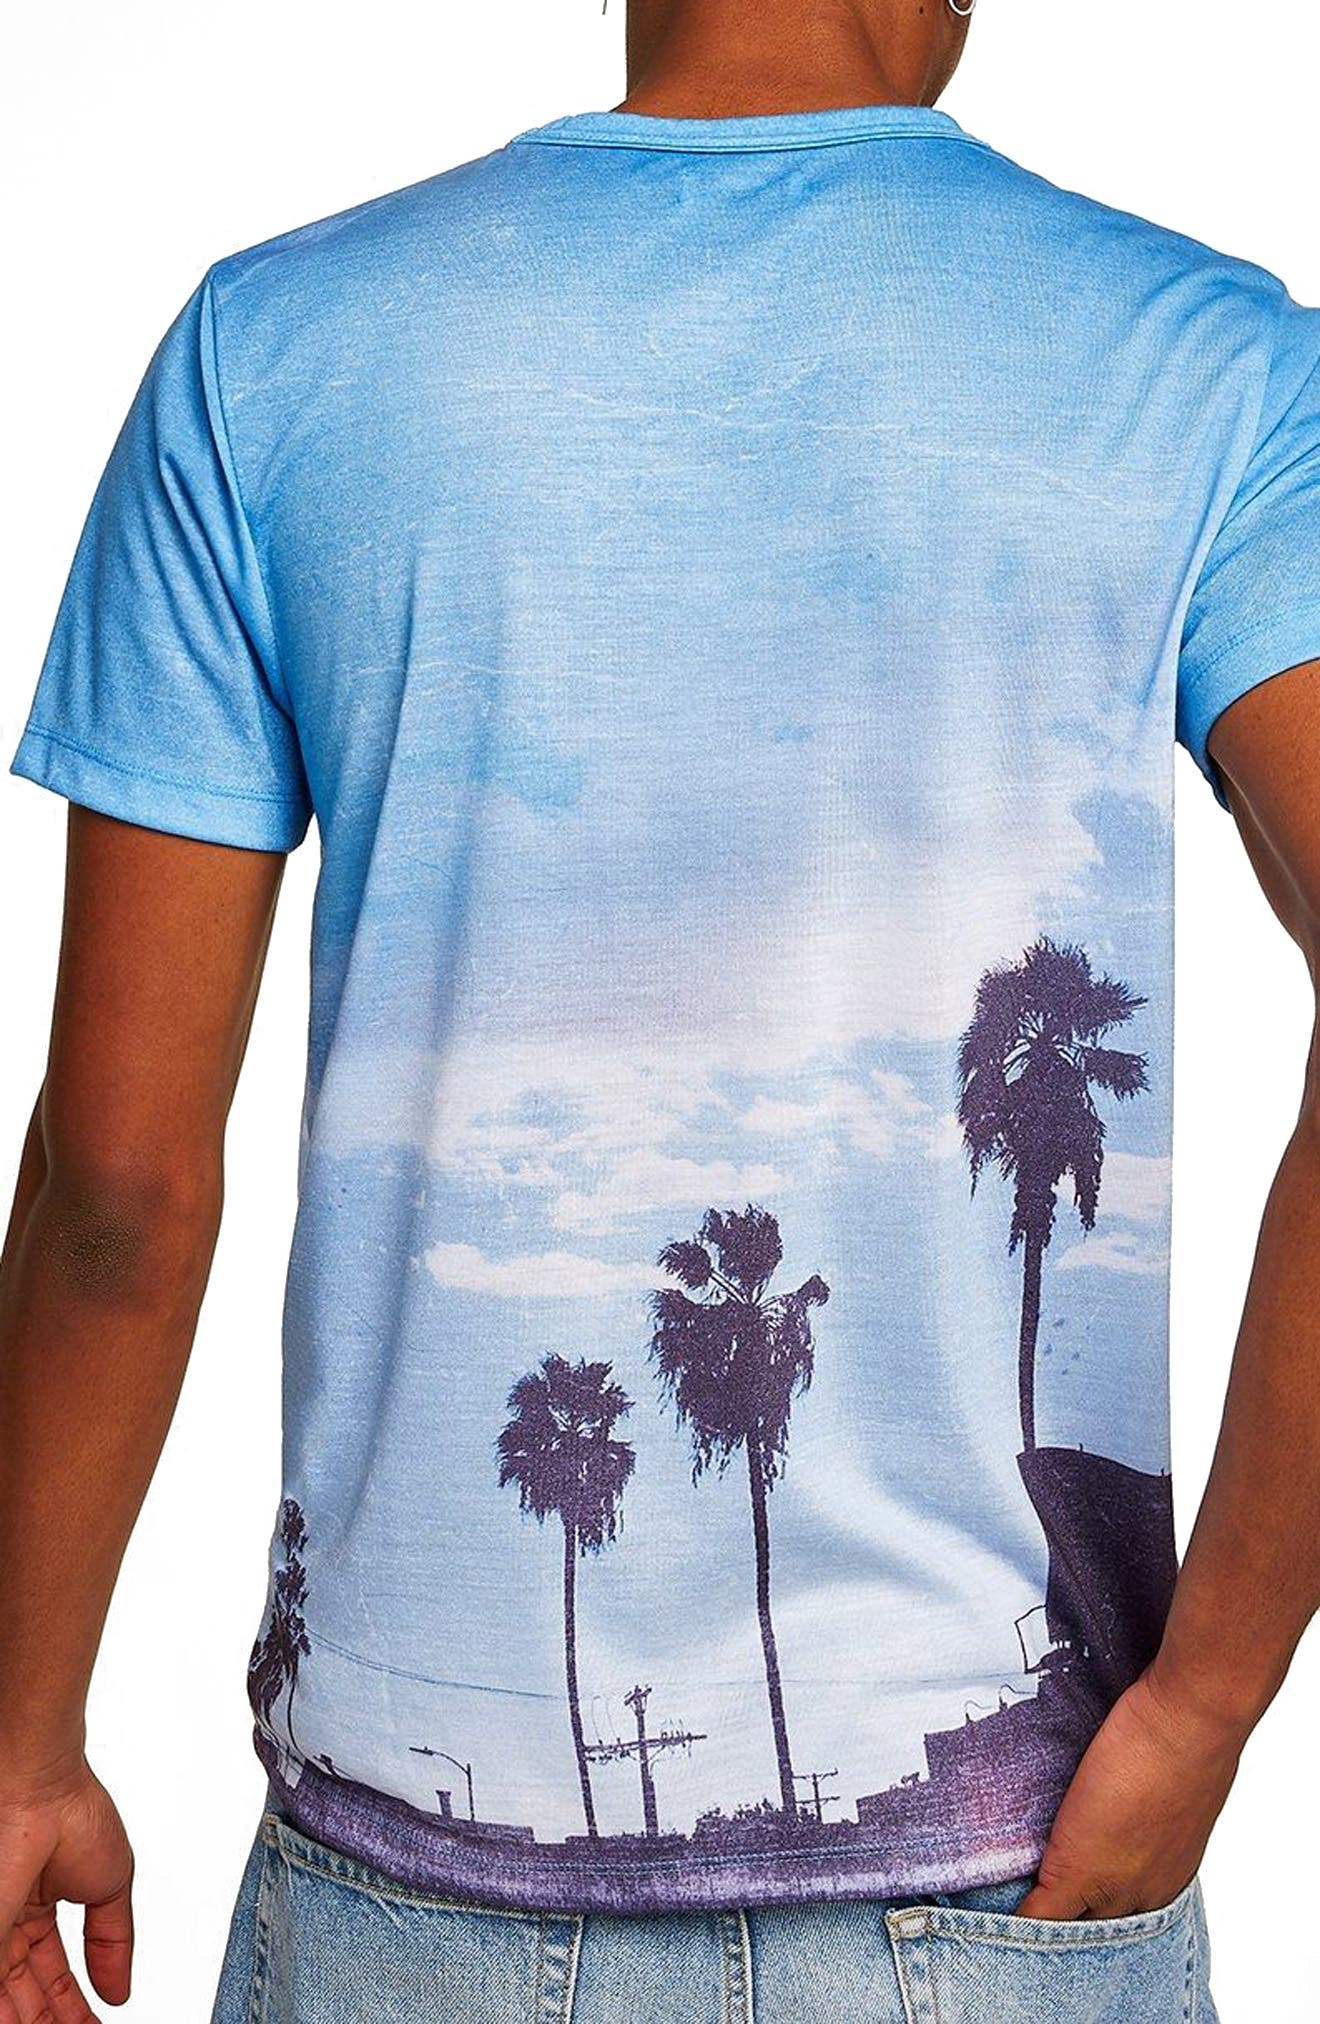 Classic Fit Seclusion Graphic T-Shirt,                             Alternate thumbnail 2, color,                             Blue Multi